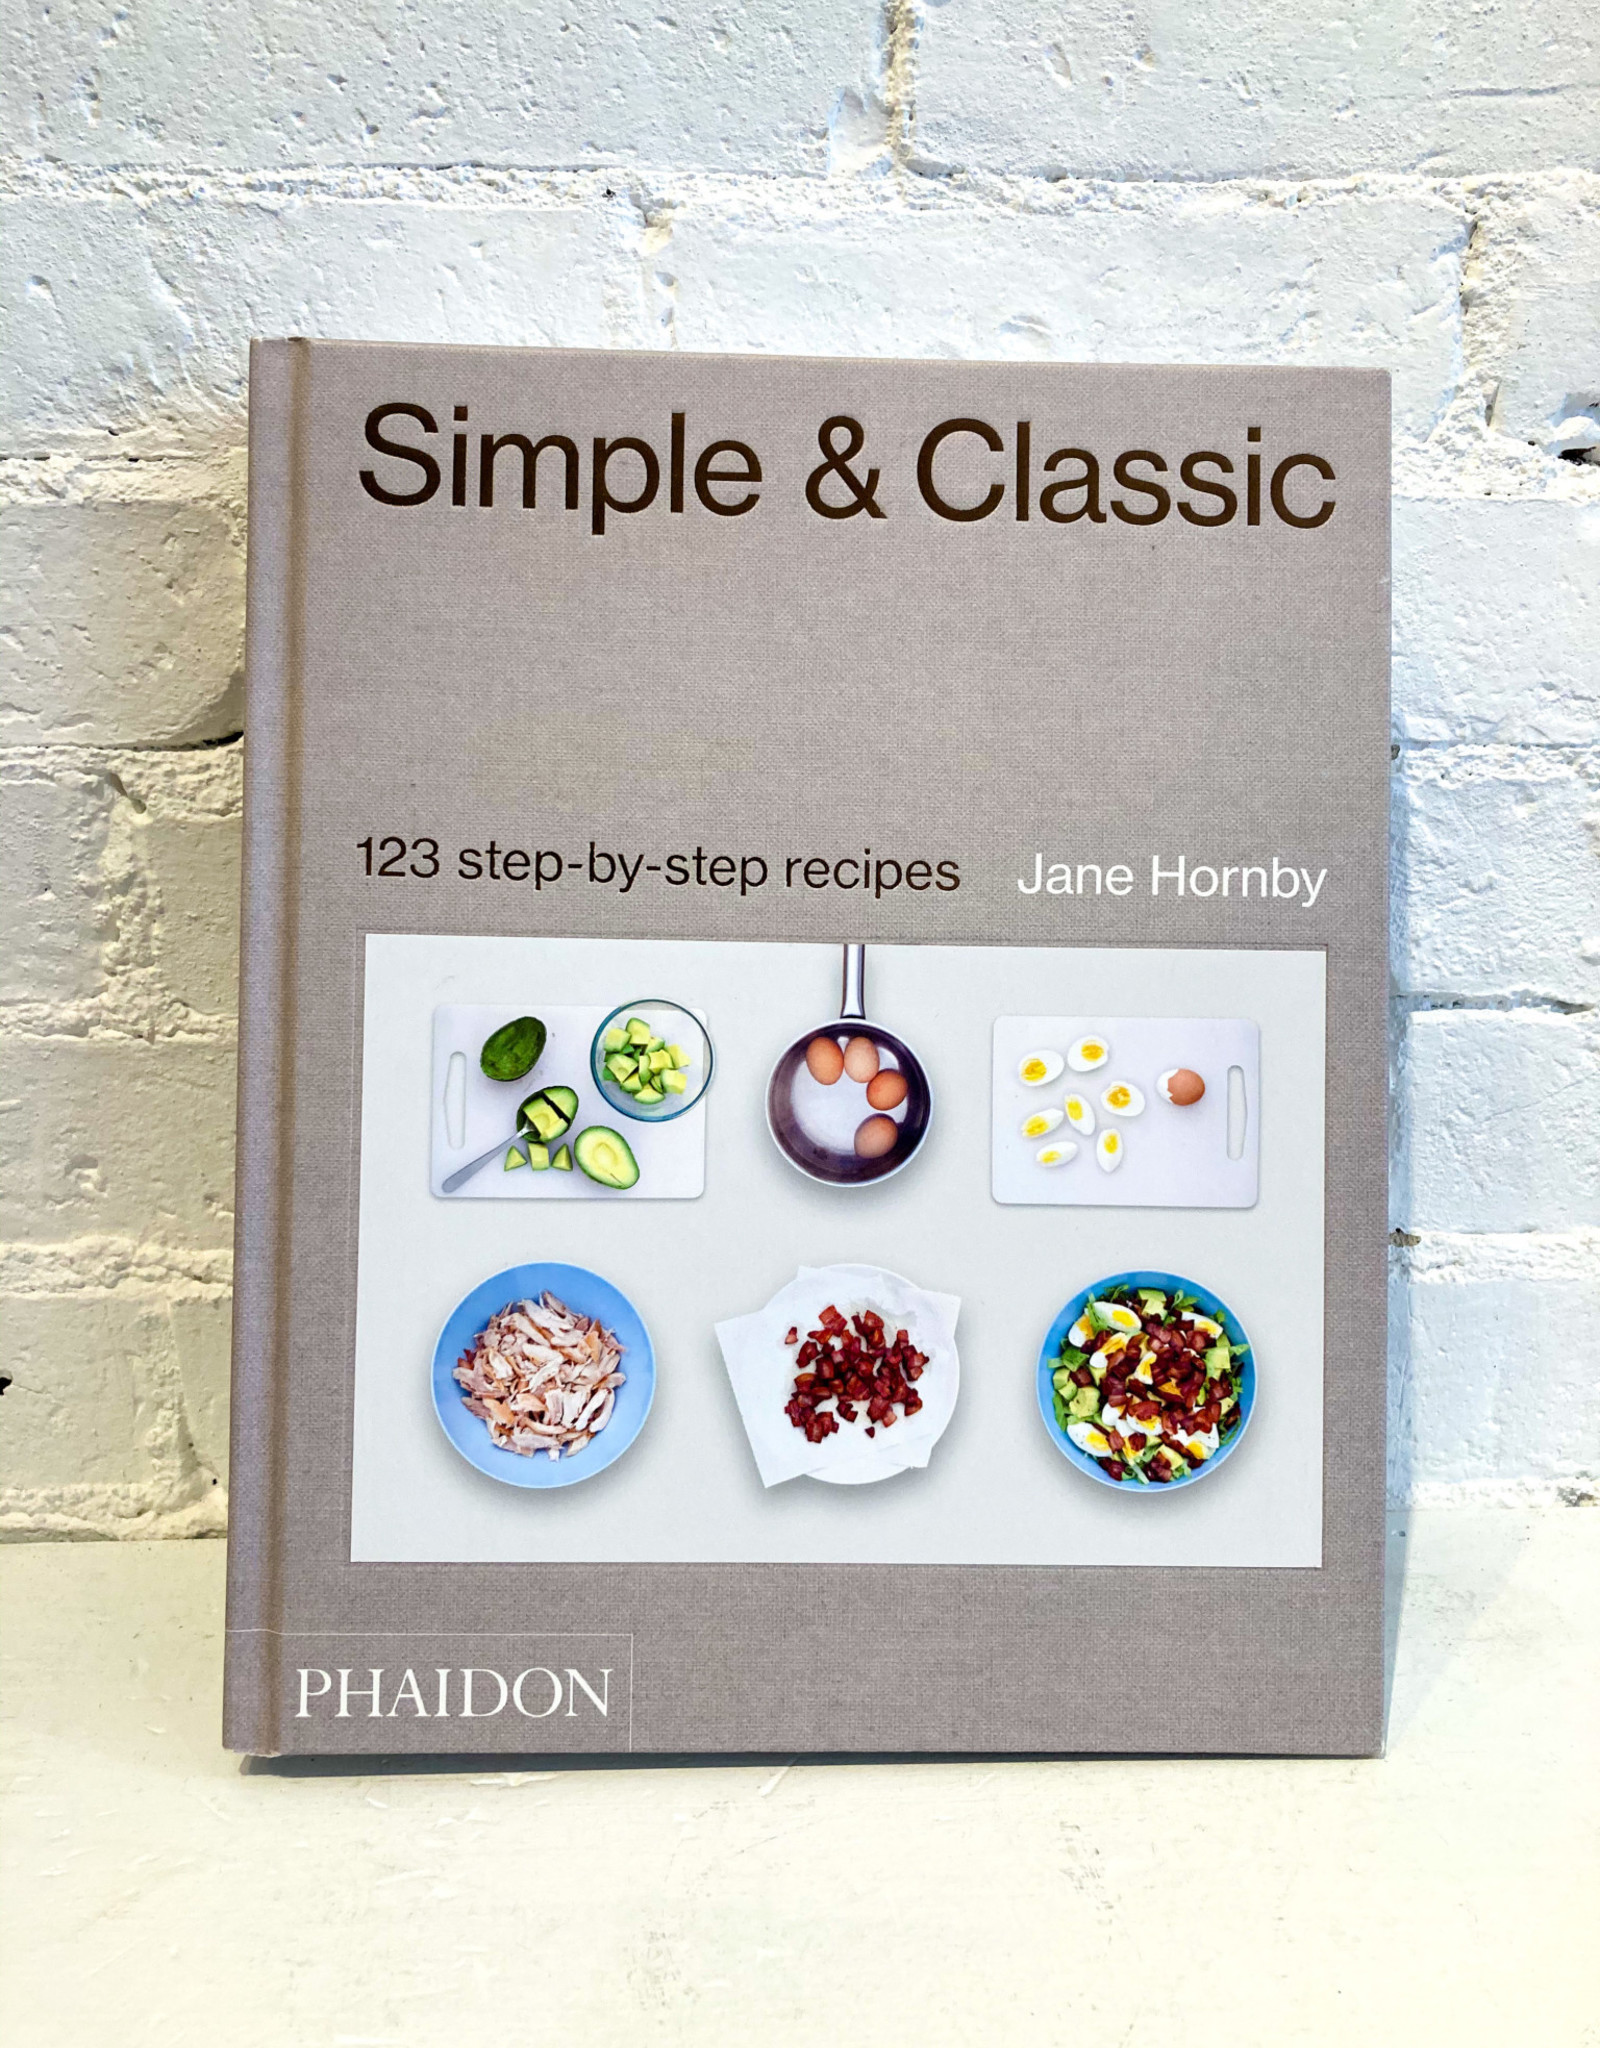 Simple & Classic: 123 Step-by-Step Recipes by Jane Hornby